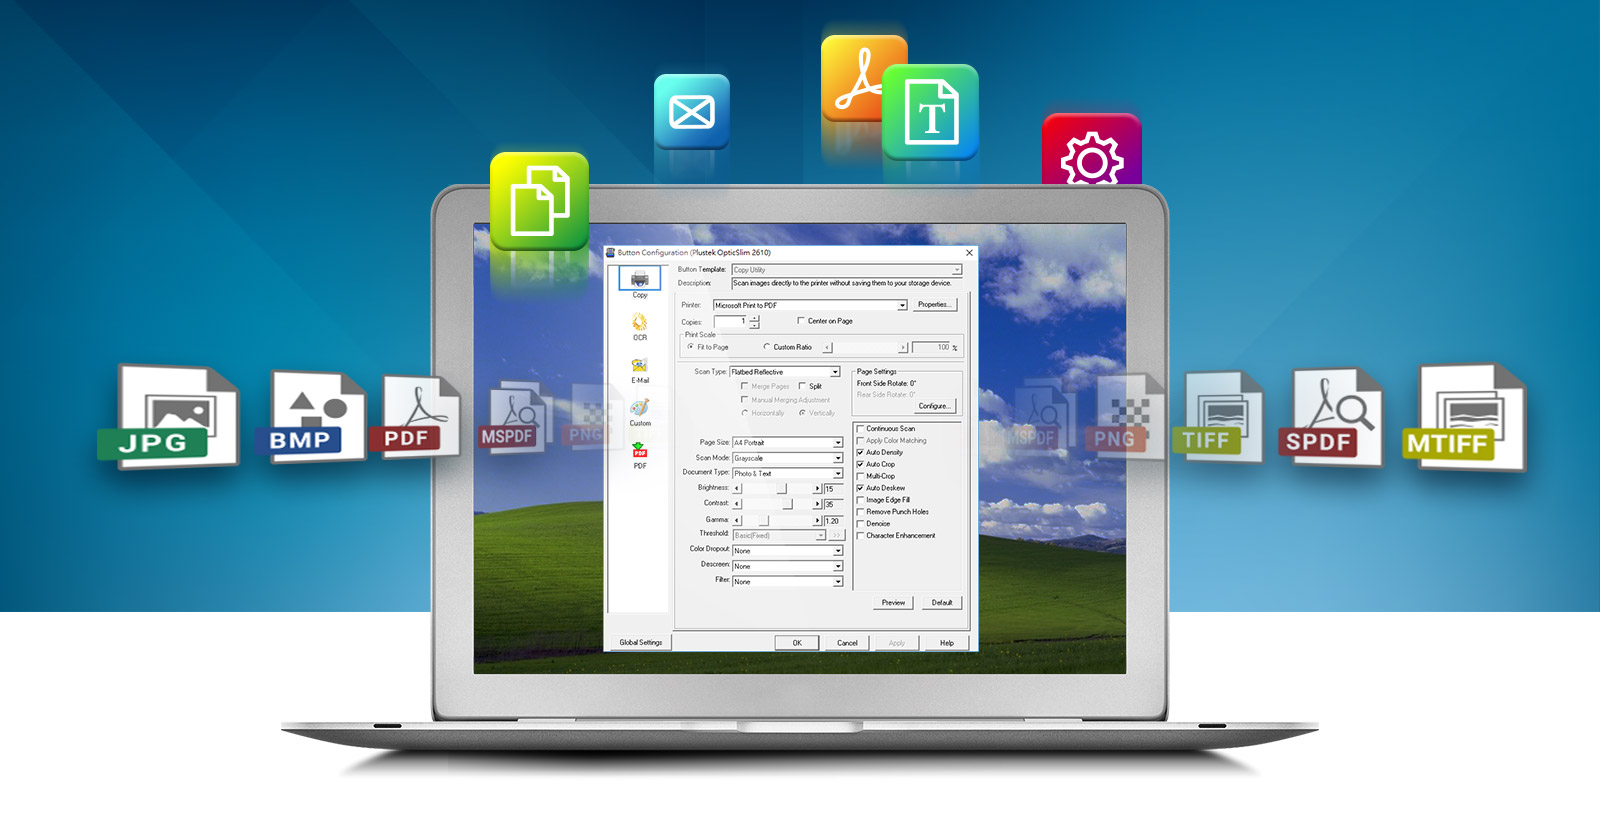 DocAction enables you to specify your personalizd scanning configration setting